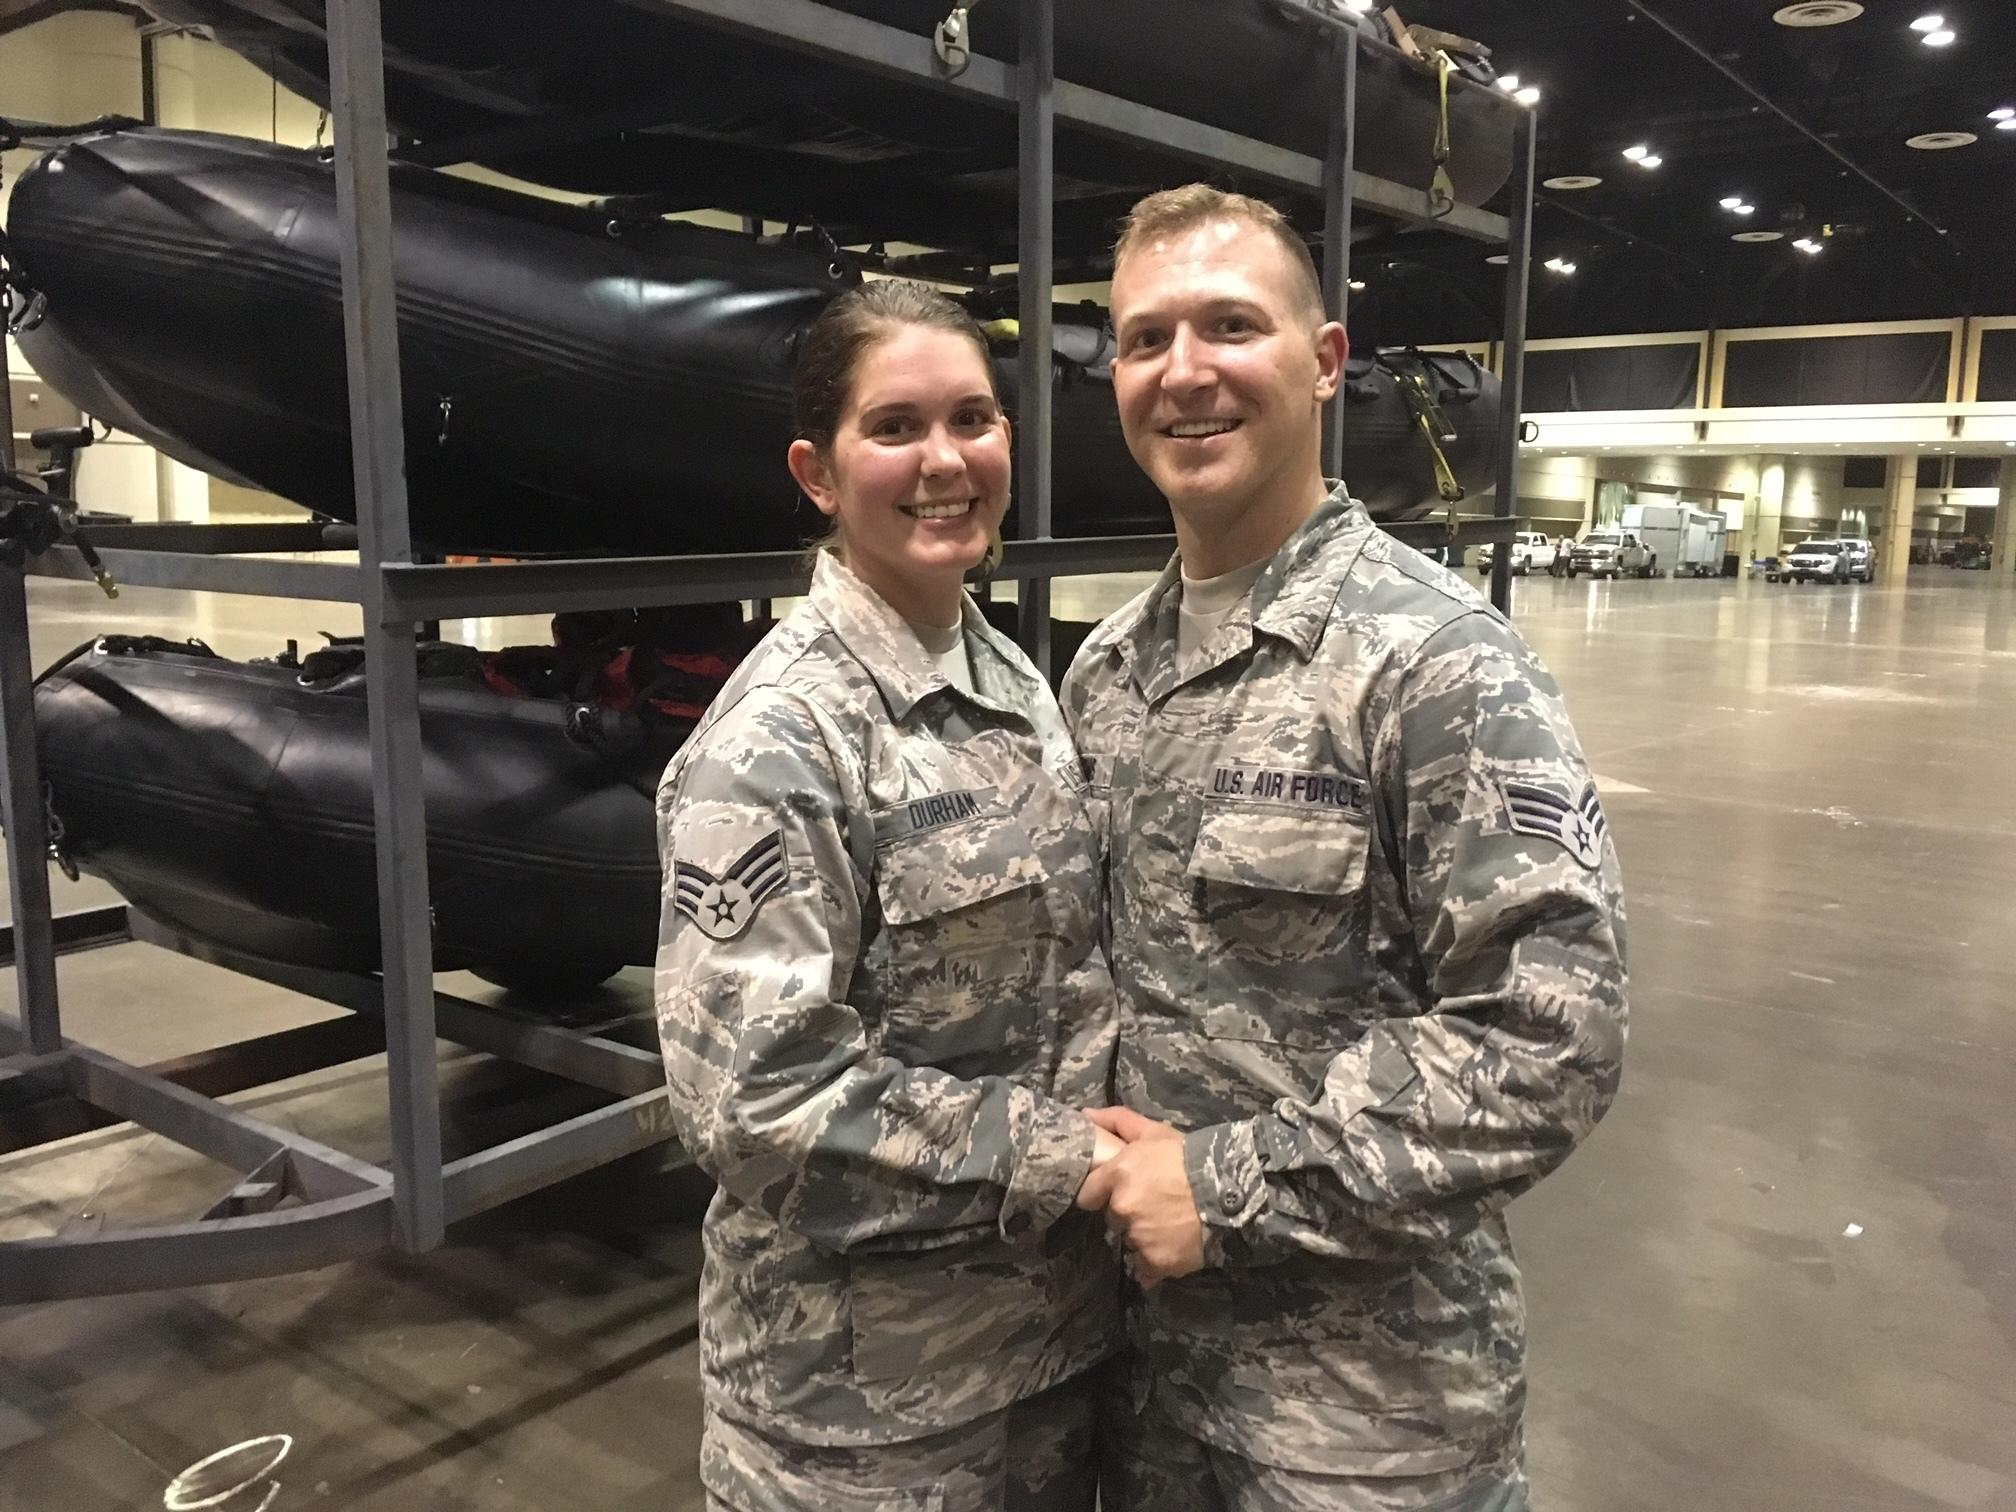 Lauren Durham, left, and Michael Davis, both members of the Air National Guard, pose at the Orange County Convention Center in Orlando, Fla., on Sunday, Sept. 10, 2017. The couple were planning to get married on a beach next weekend but were deployed to assist in the relief efforts for Hurricane Irma. Instead they got married Sunday in fatigues in a vast hangar filled with rescue vehicles and paramedics.  (AP Photo/Claire Galofaro)